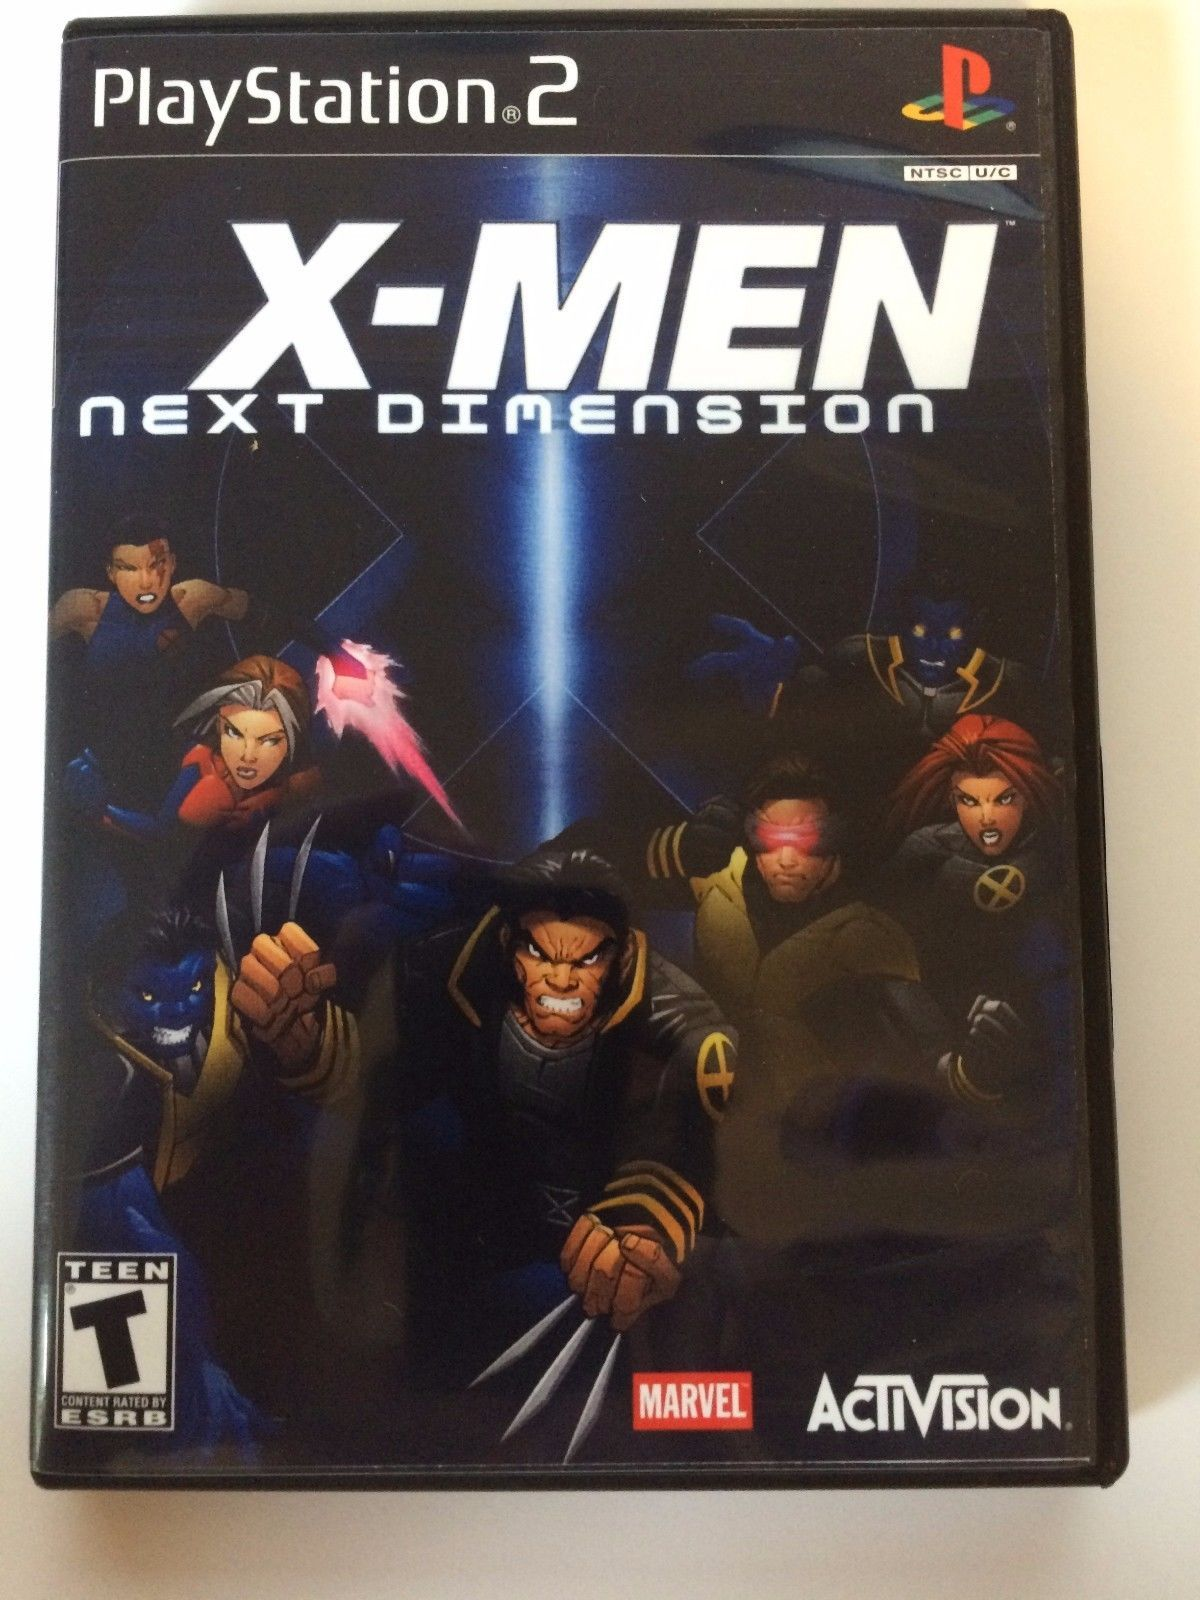 X-Men Next Dimension - Playstation 2 - Replacement Case - No Game